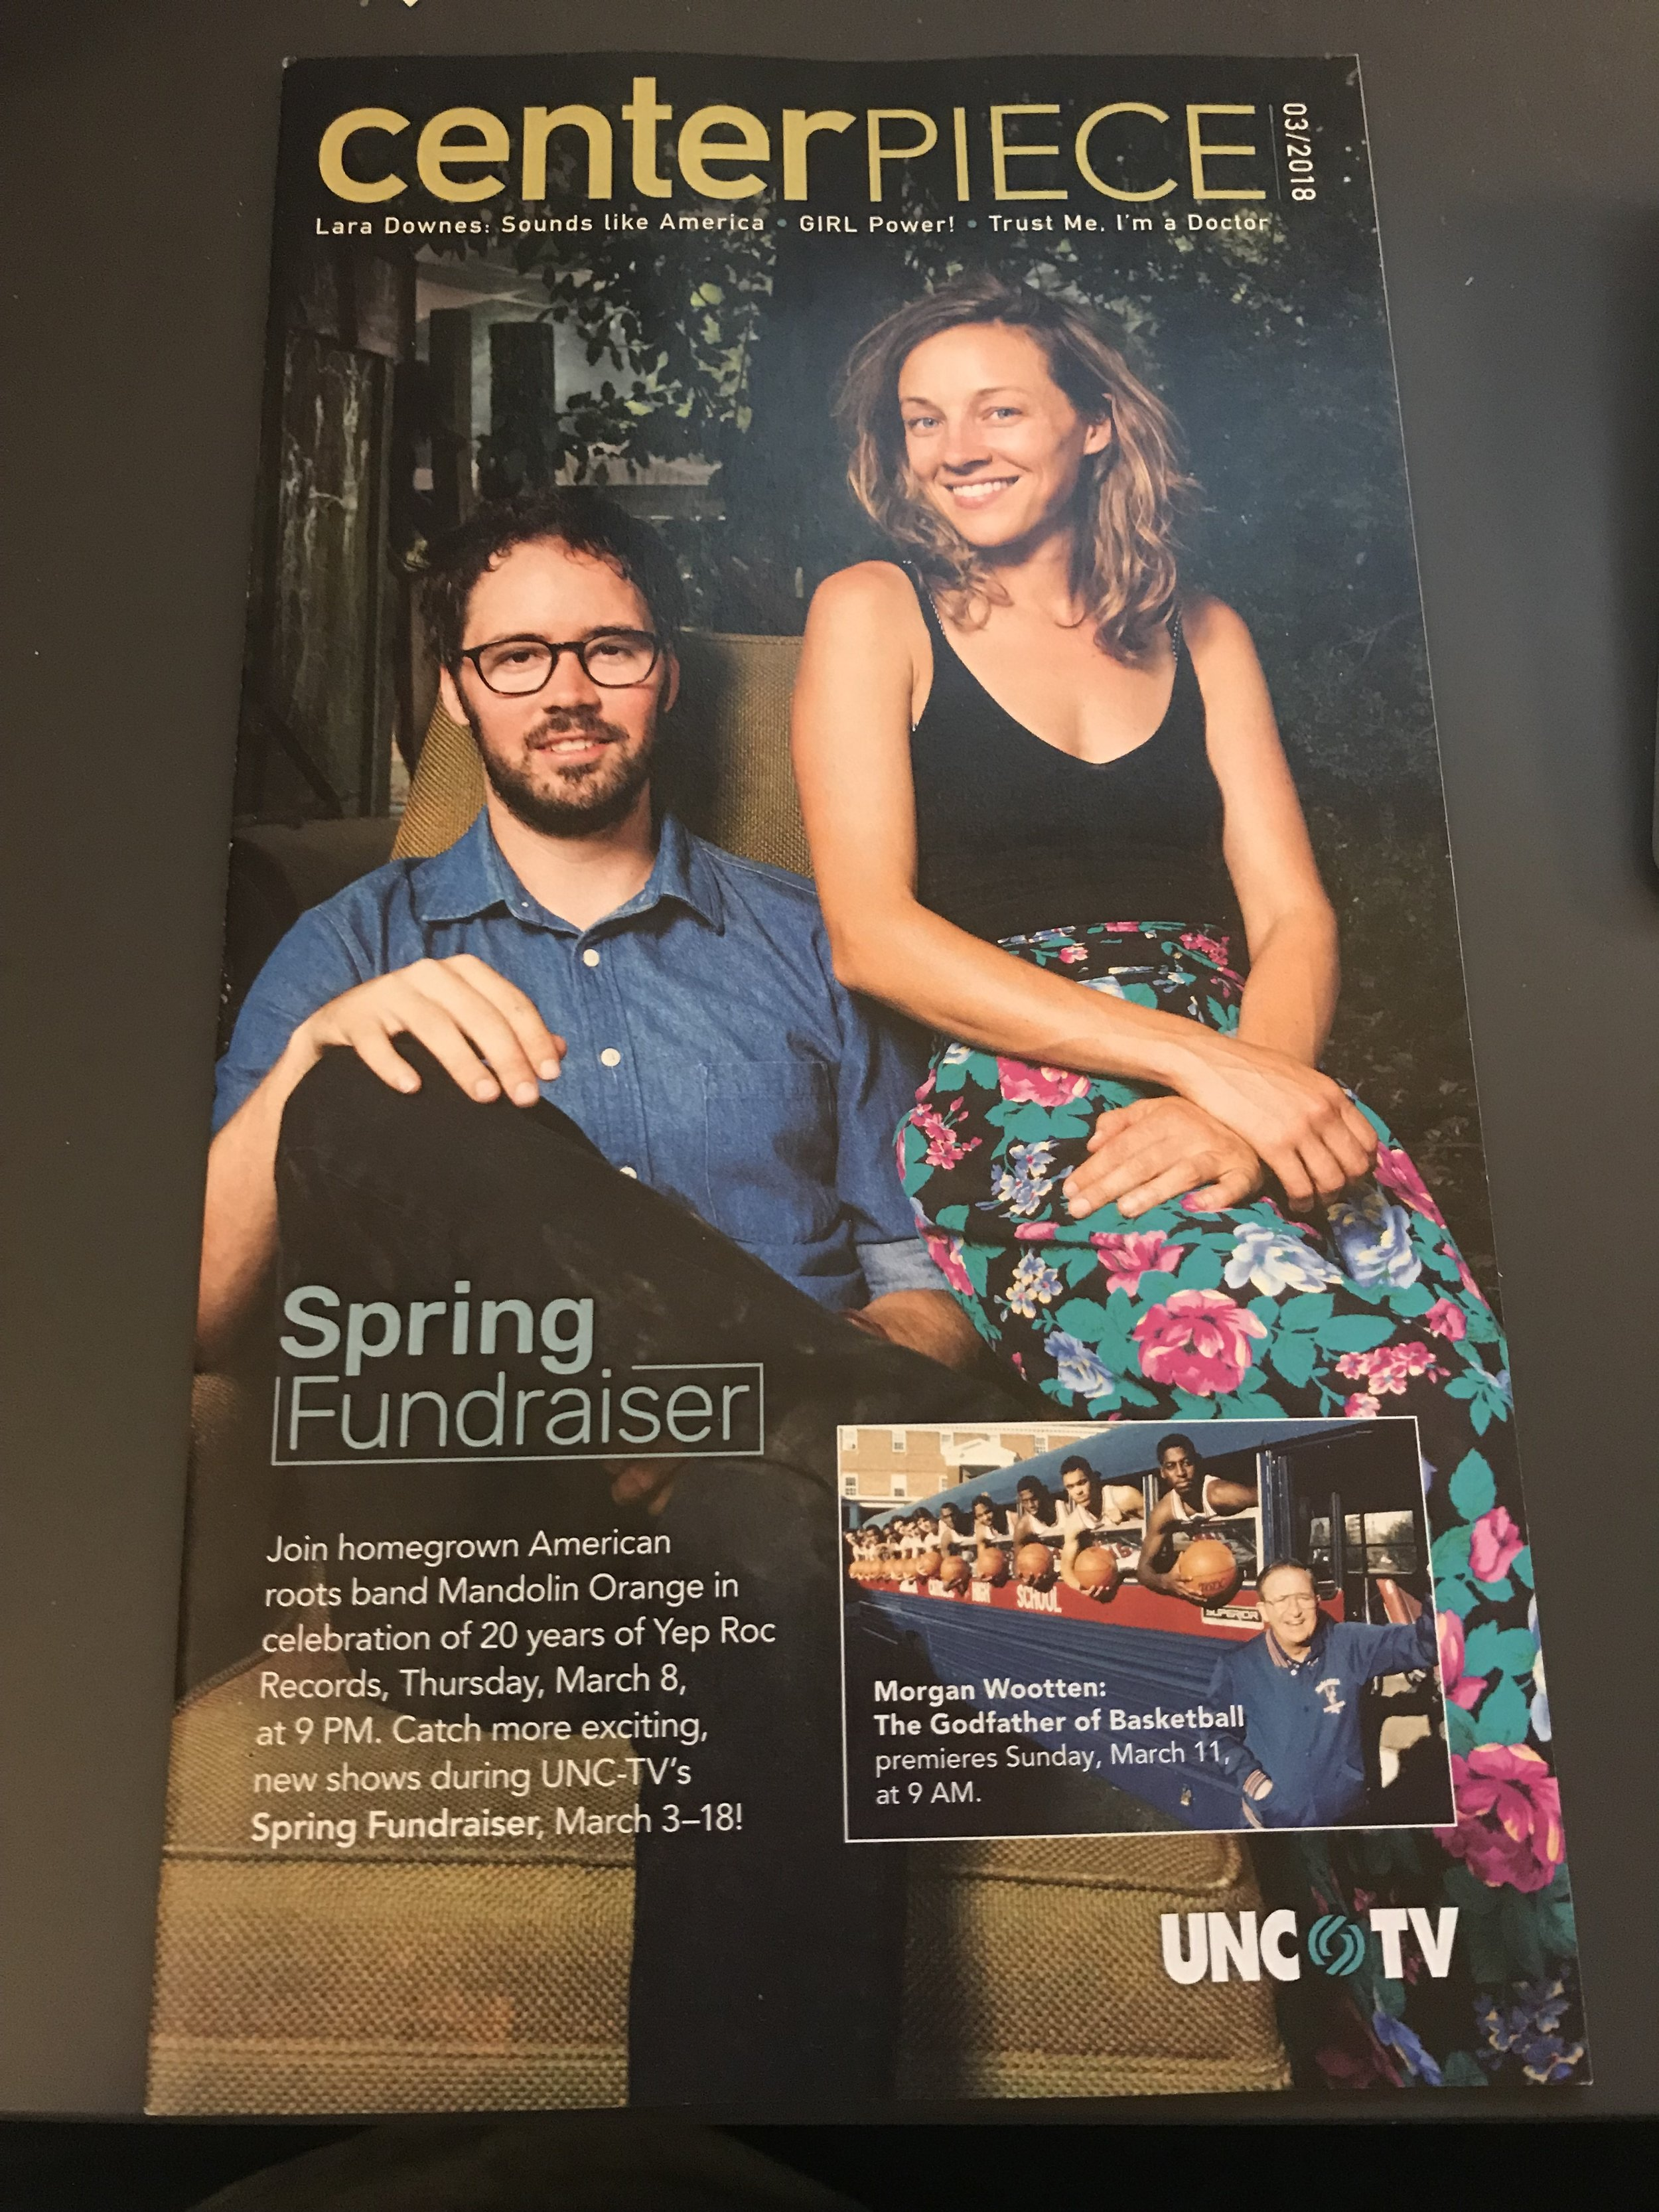 Our faces on the cover of UNC TV's Centerpiece magazine!